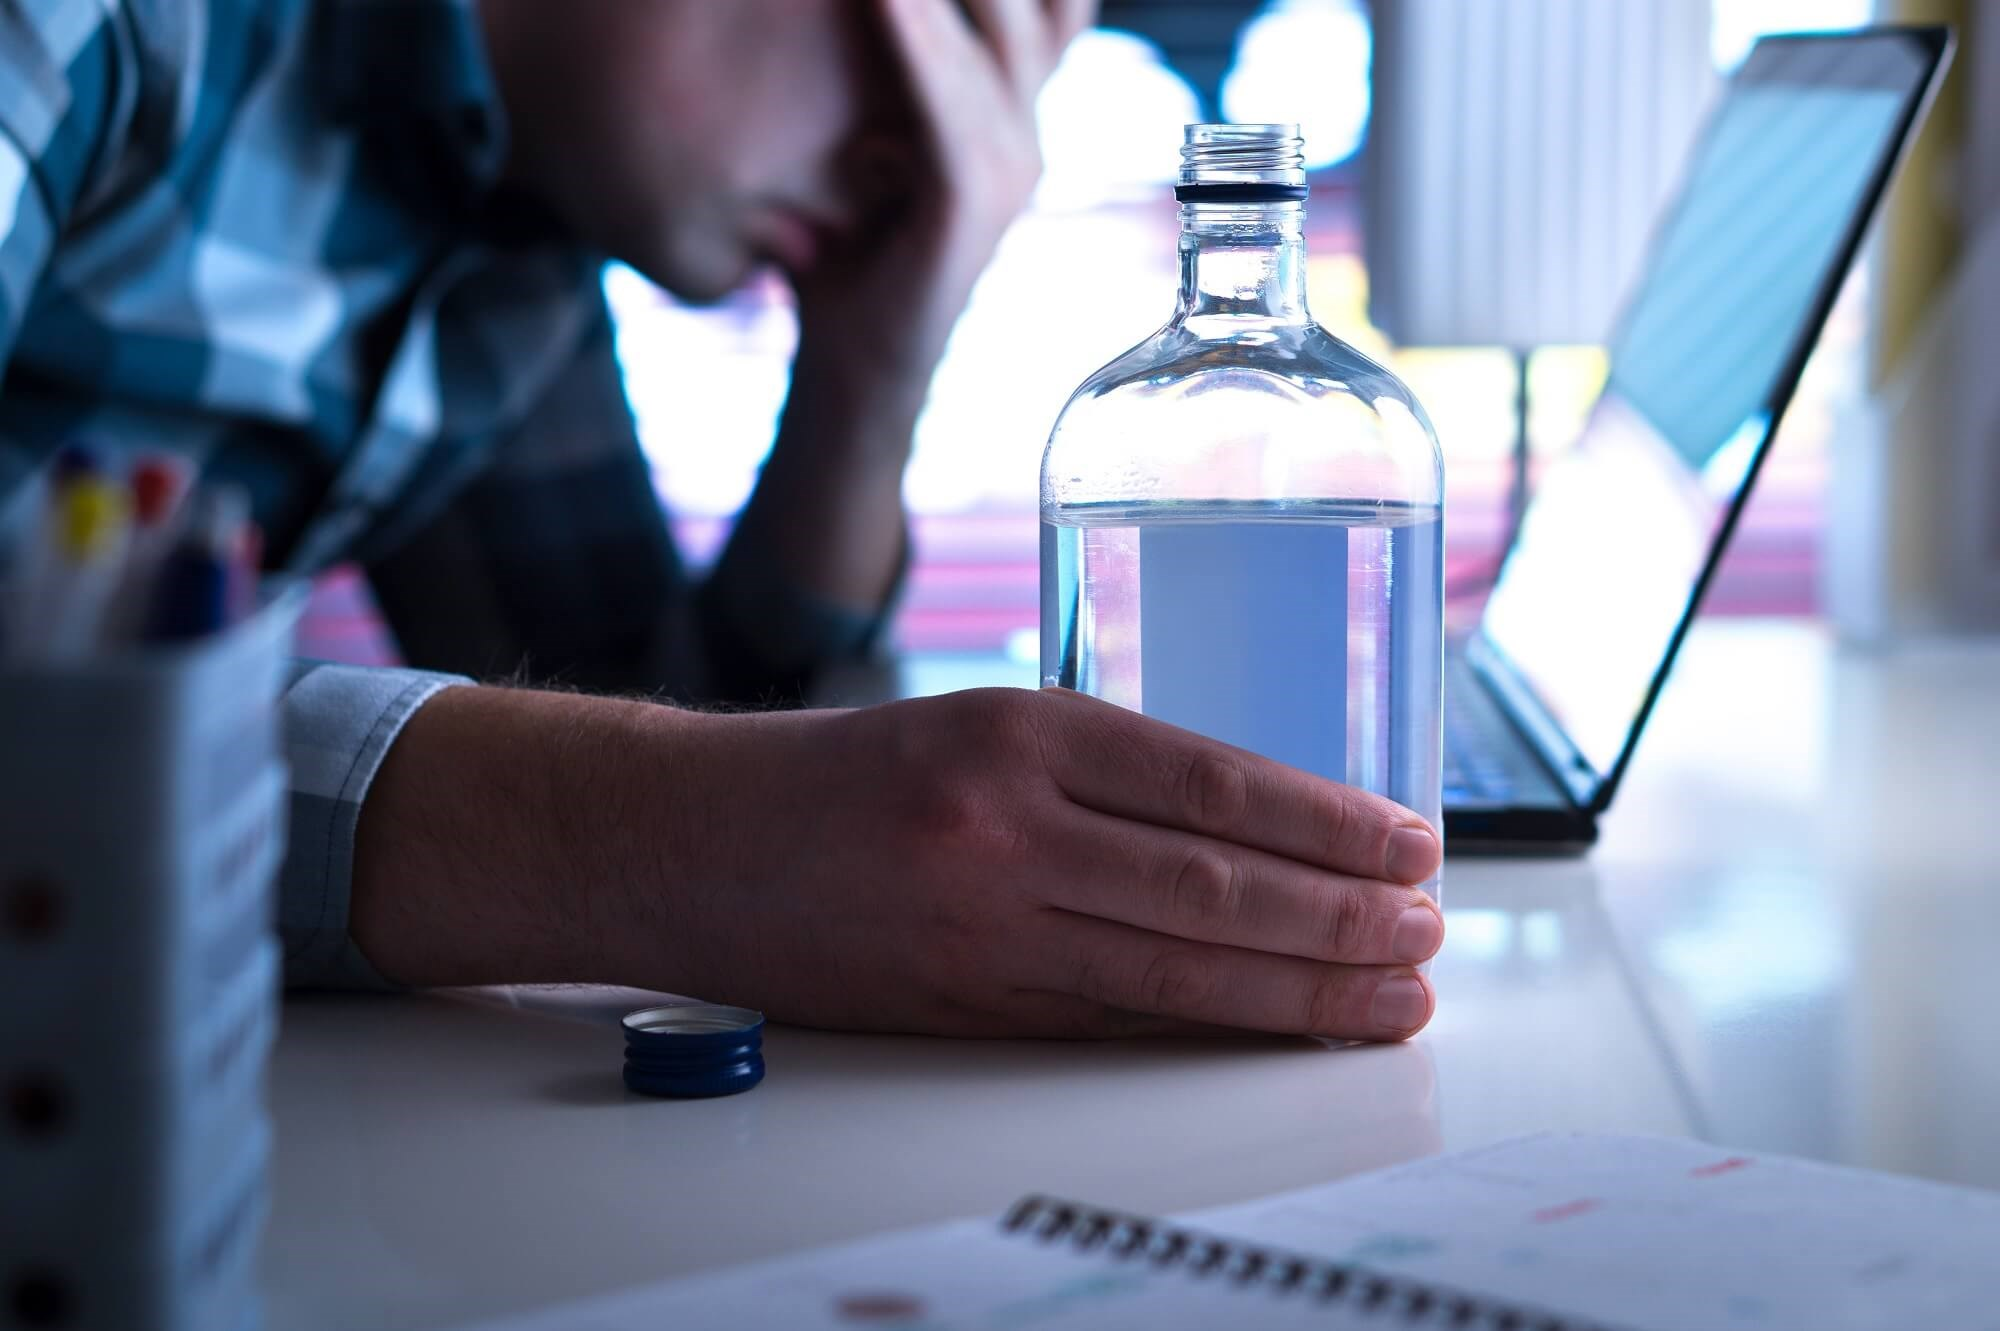 The association between heavy alcohol use and consistent virologic suppression during the subsequent year depended on concurrent symptoms of depression.